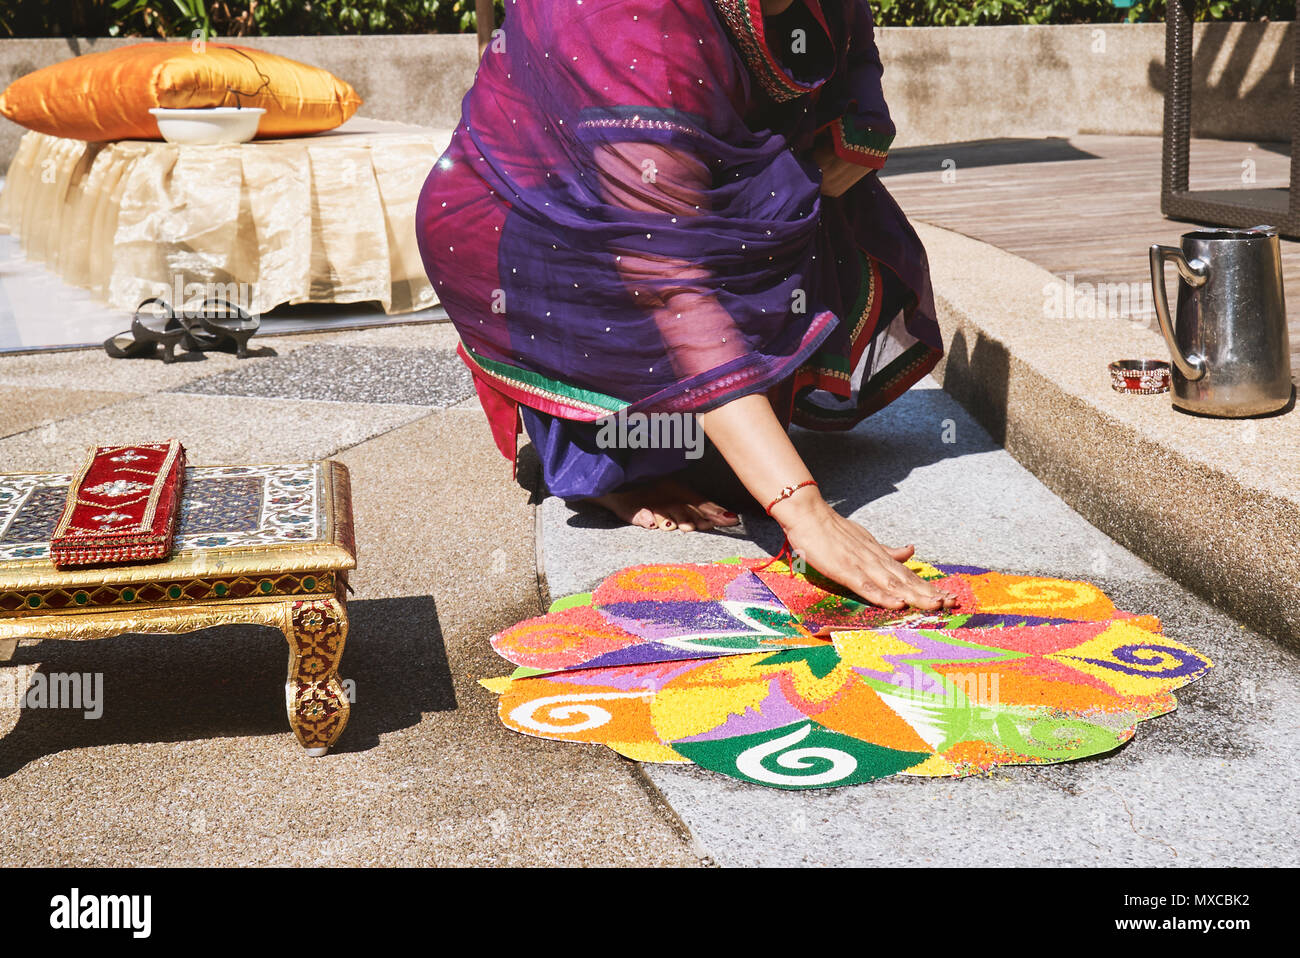 Women decorating and coloring tradition colorful rice art or sand art (Rangoli) on the floor with paper pattern using dry rice and dry flour with colo Stock Photo